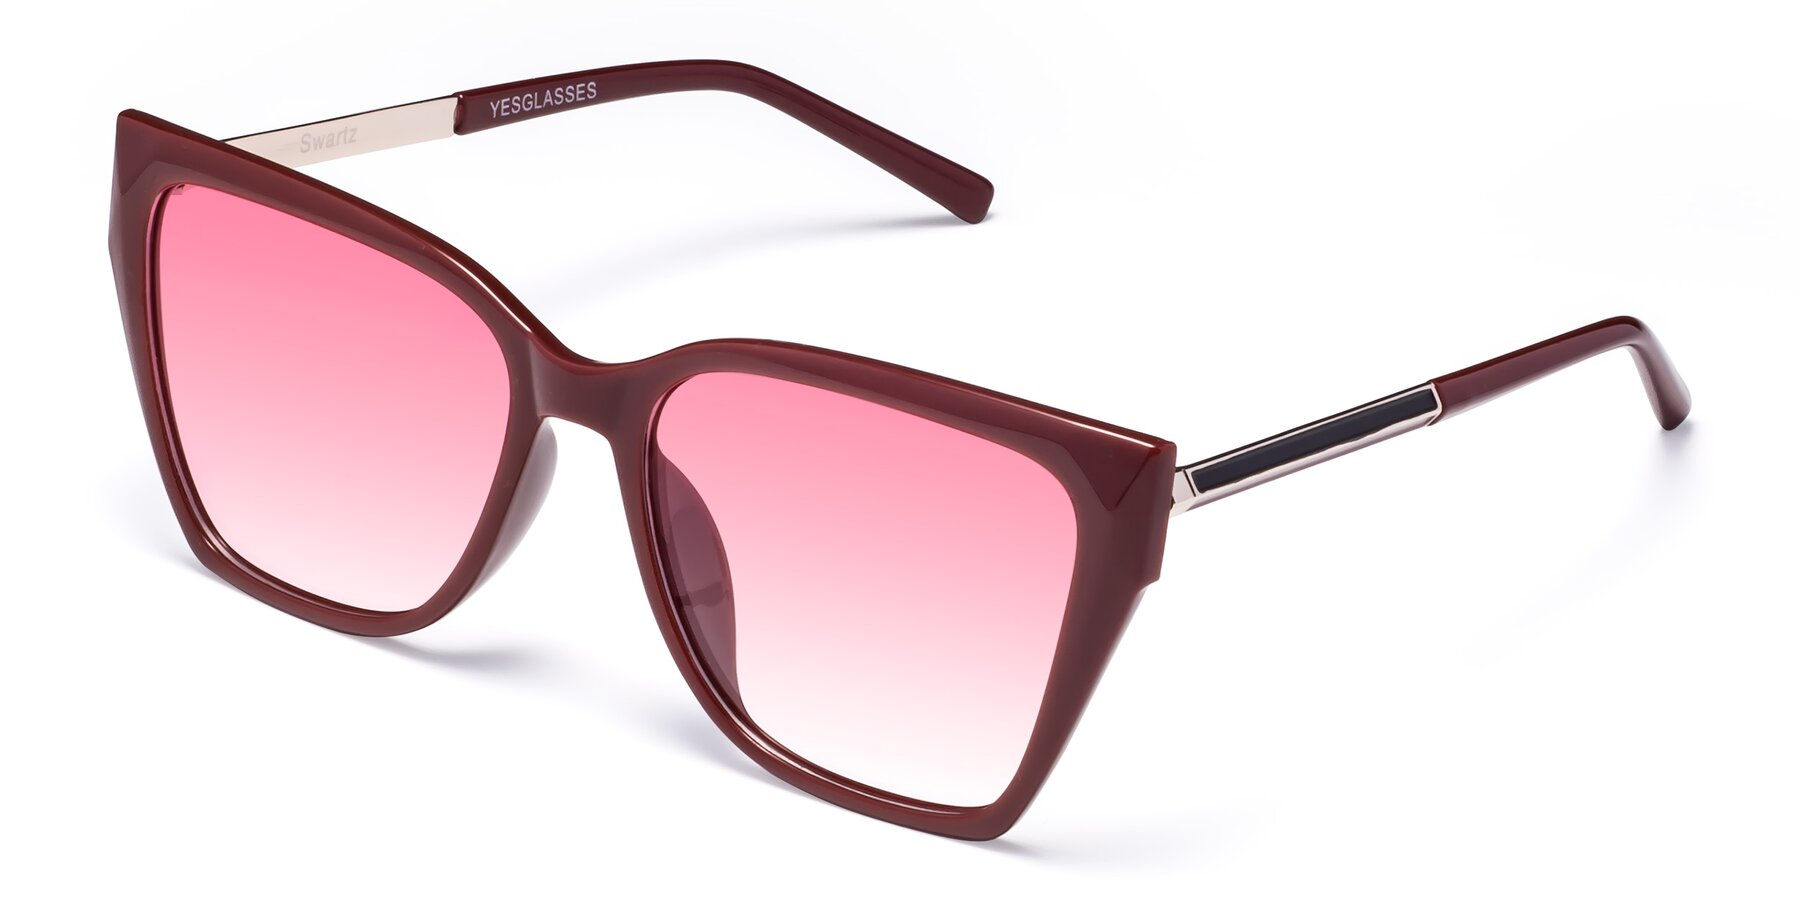 Angle of Swartz in Wine with Pink Gradient Lenses